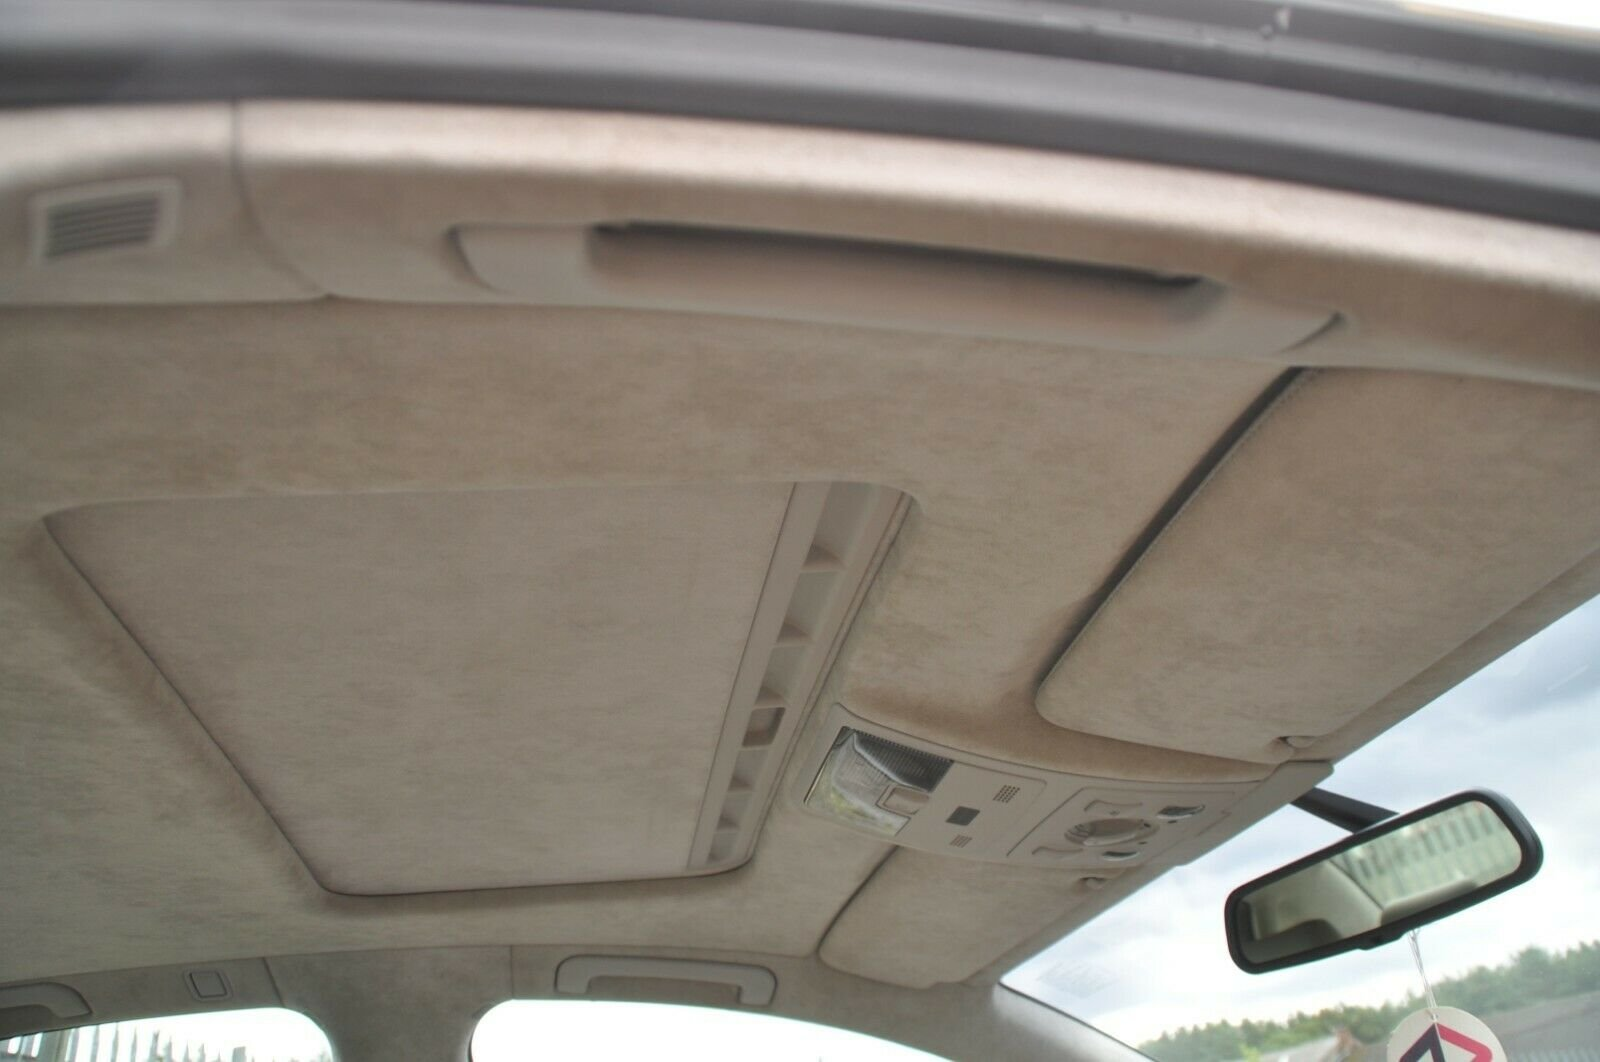 2002 AUDI S6 LOW MILES LEATHER RECAROS BOSE STAINLESS EXHAUSAUST For Sale (picture 4 of 6)